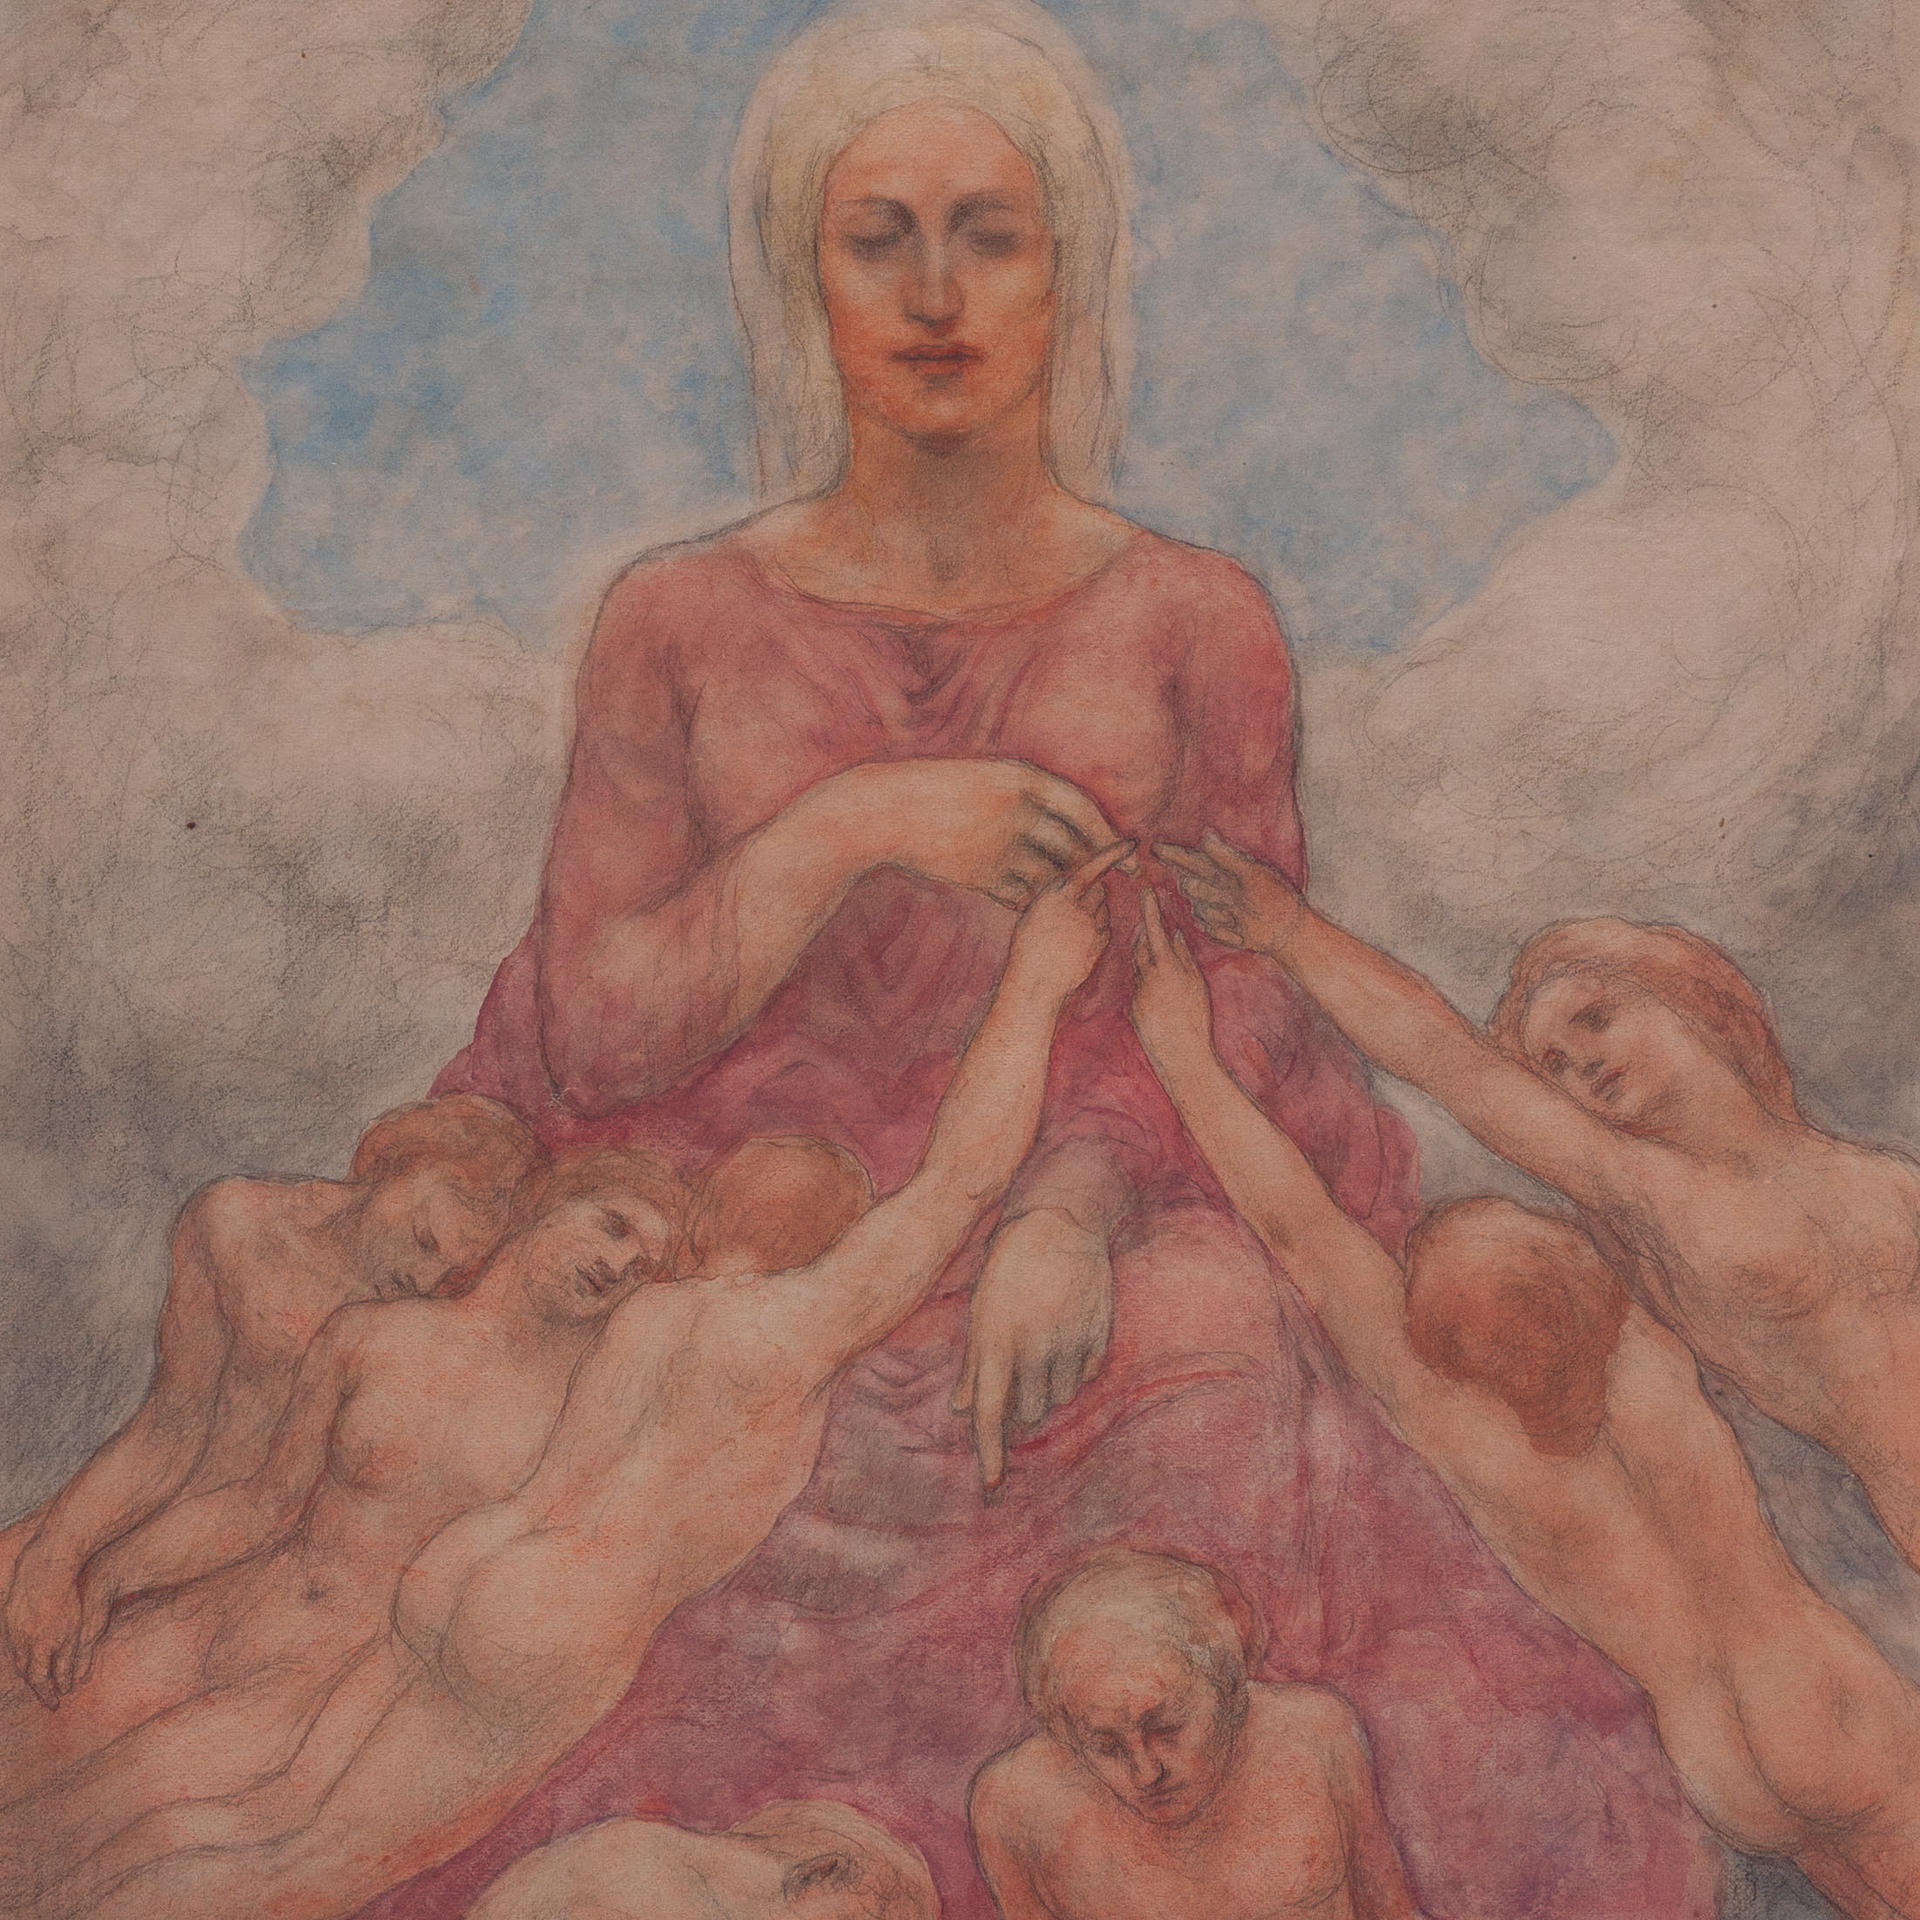 Jibran Khalil Jibran, Mother Earth, watercolor and pencil on paper, undated. Telfair Museum of Art, Savannah, Georgia.